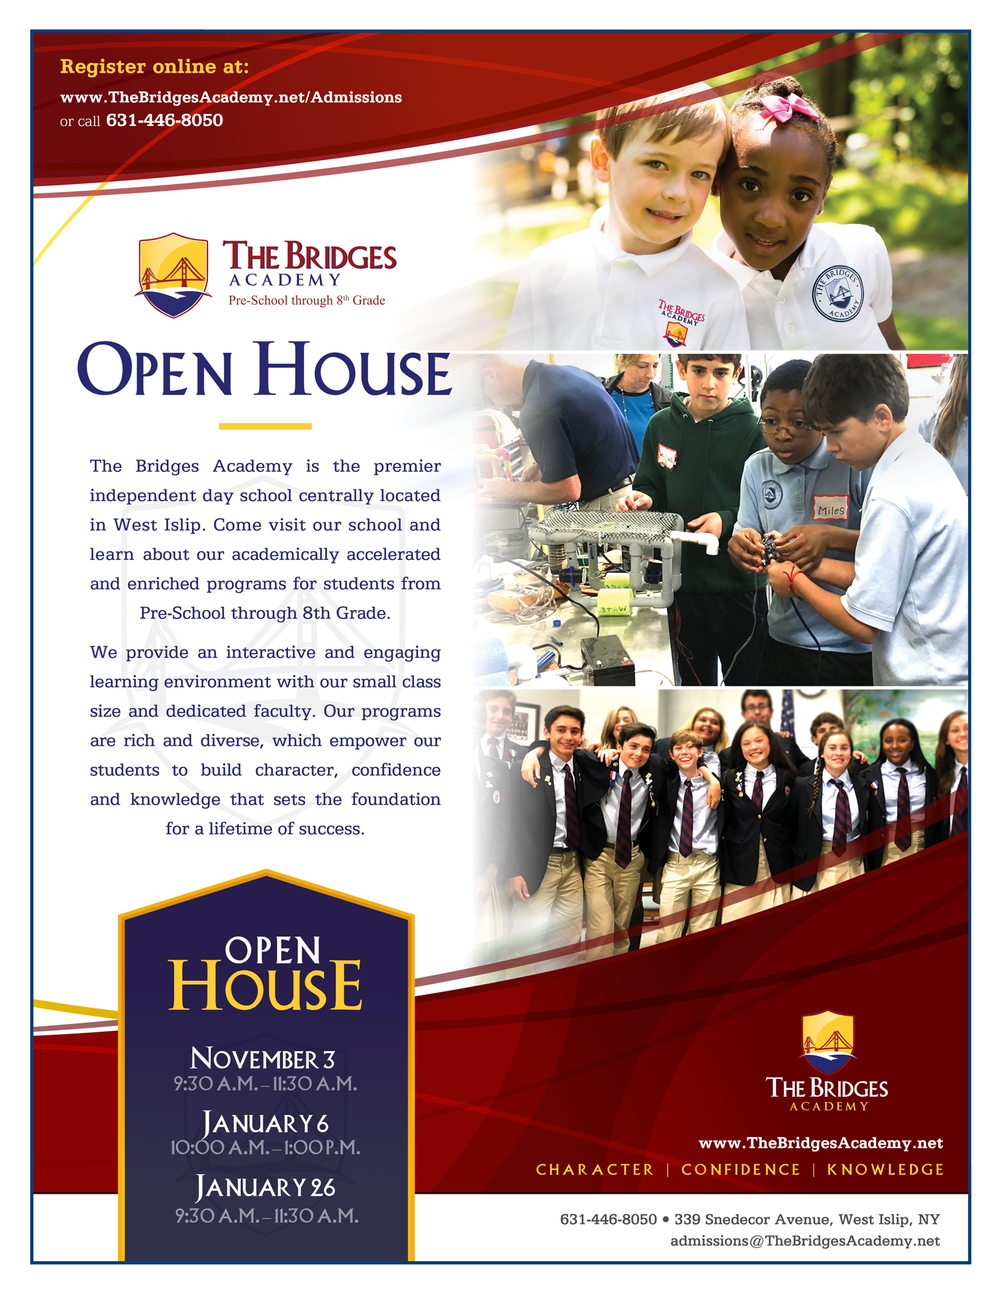 TBA-OpenHouse-Flyer-8x10-20170929.jpg